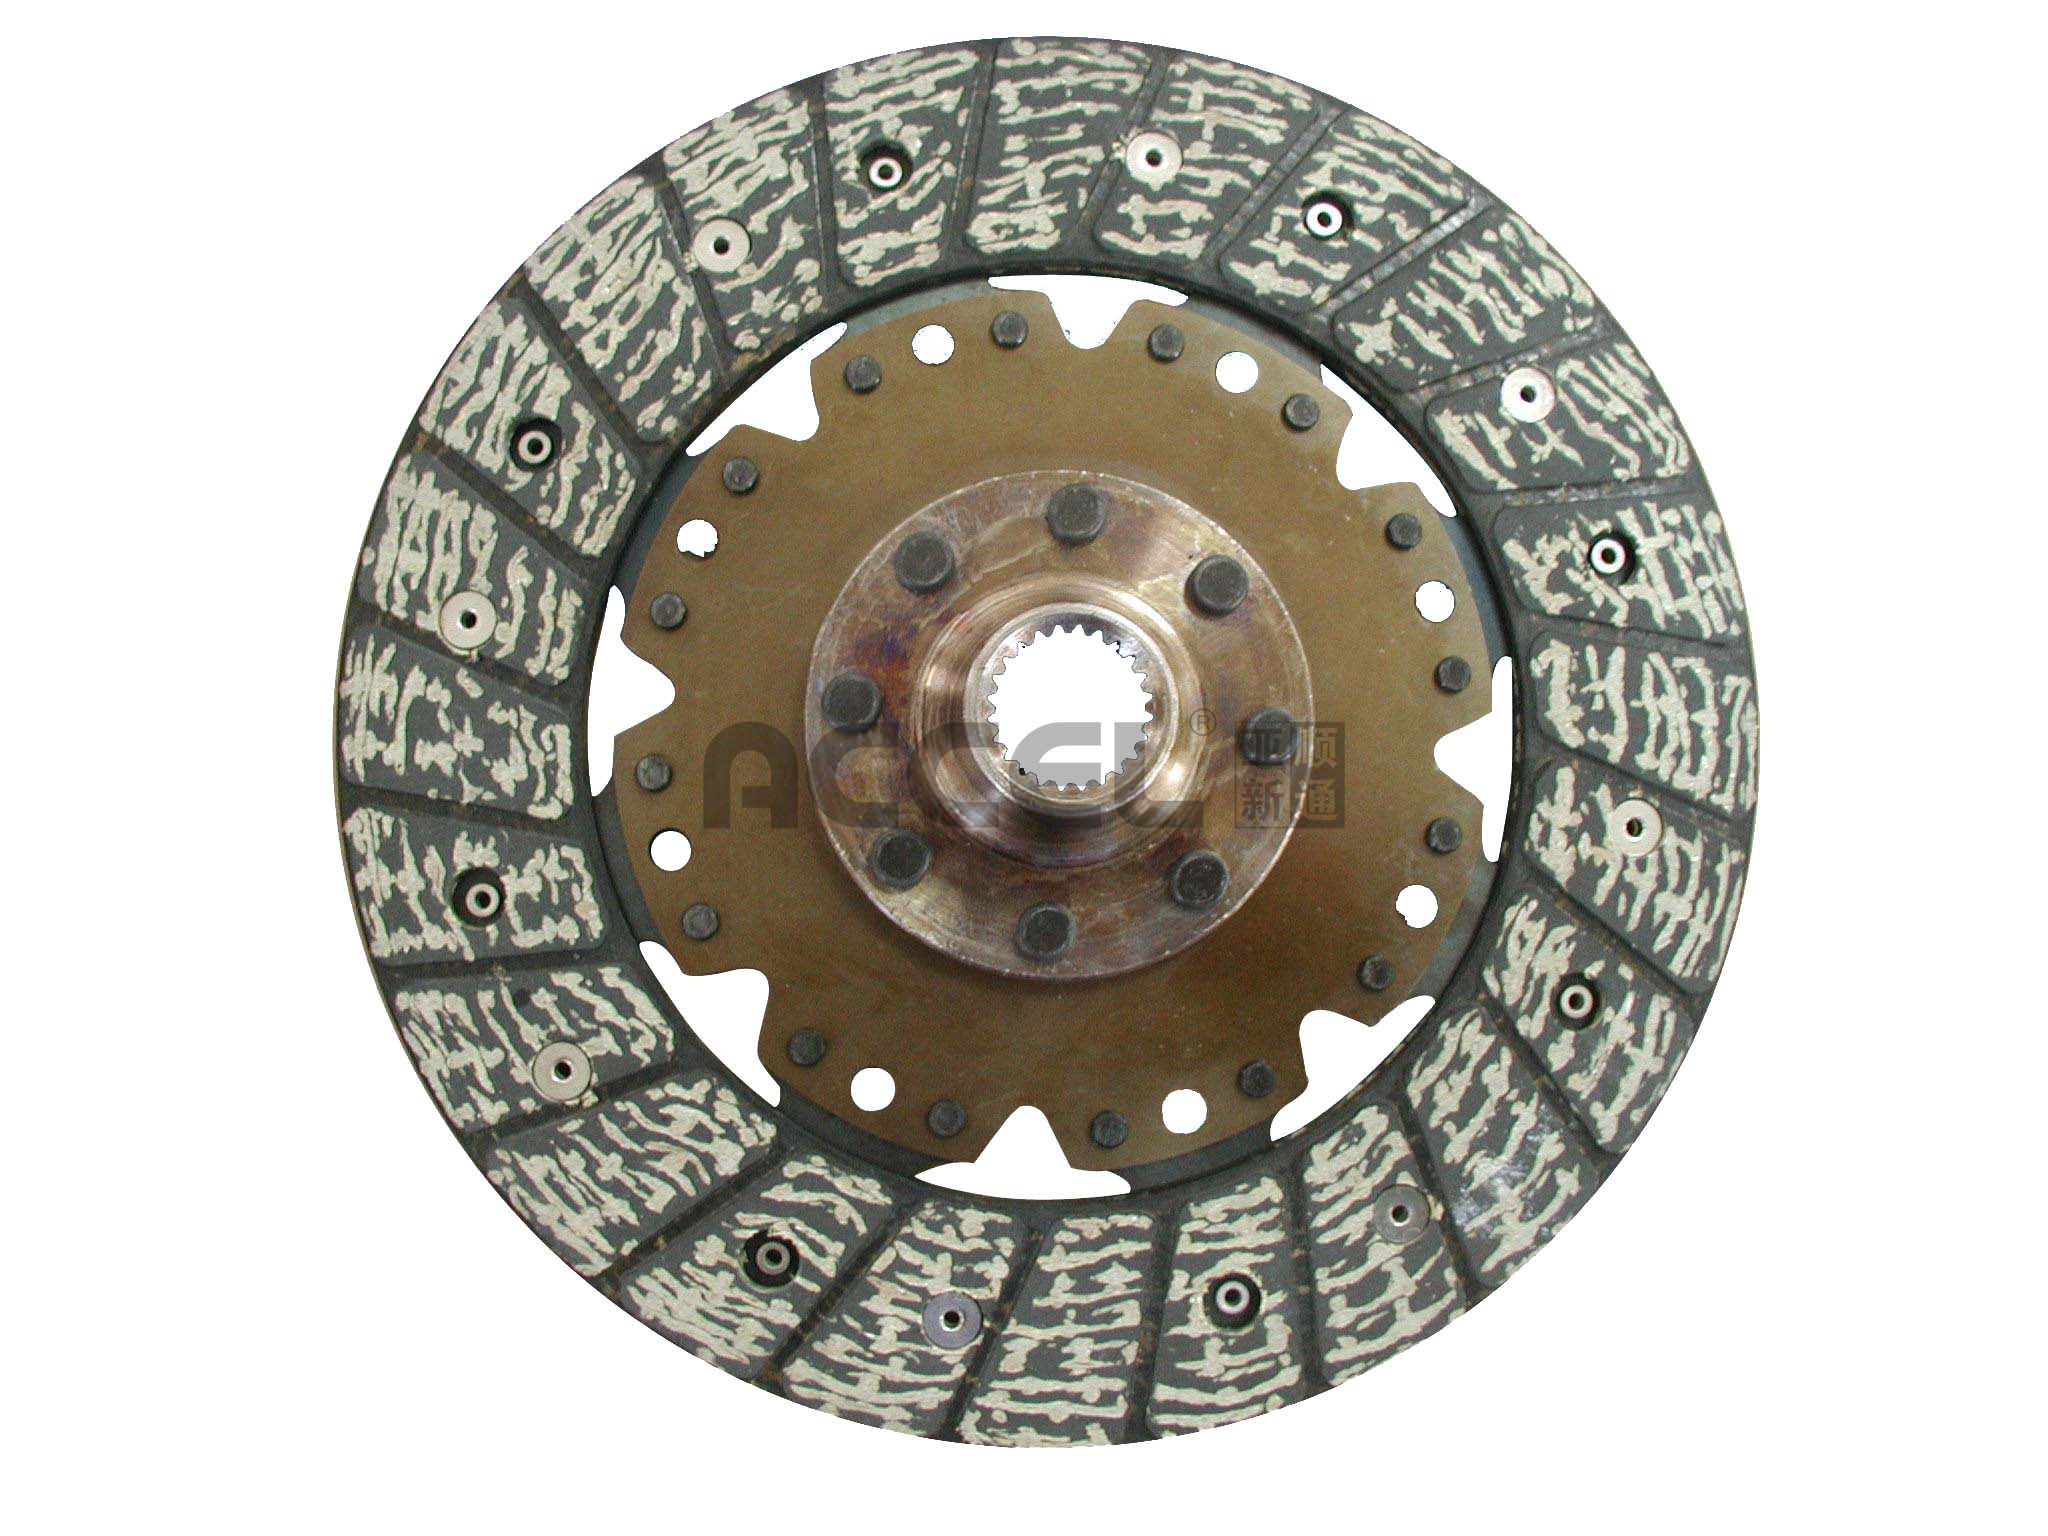 Clutch Disc/OE:NULL/200*130*24*20.6/ARC-016/RACING CAR/CL1279